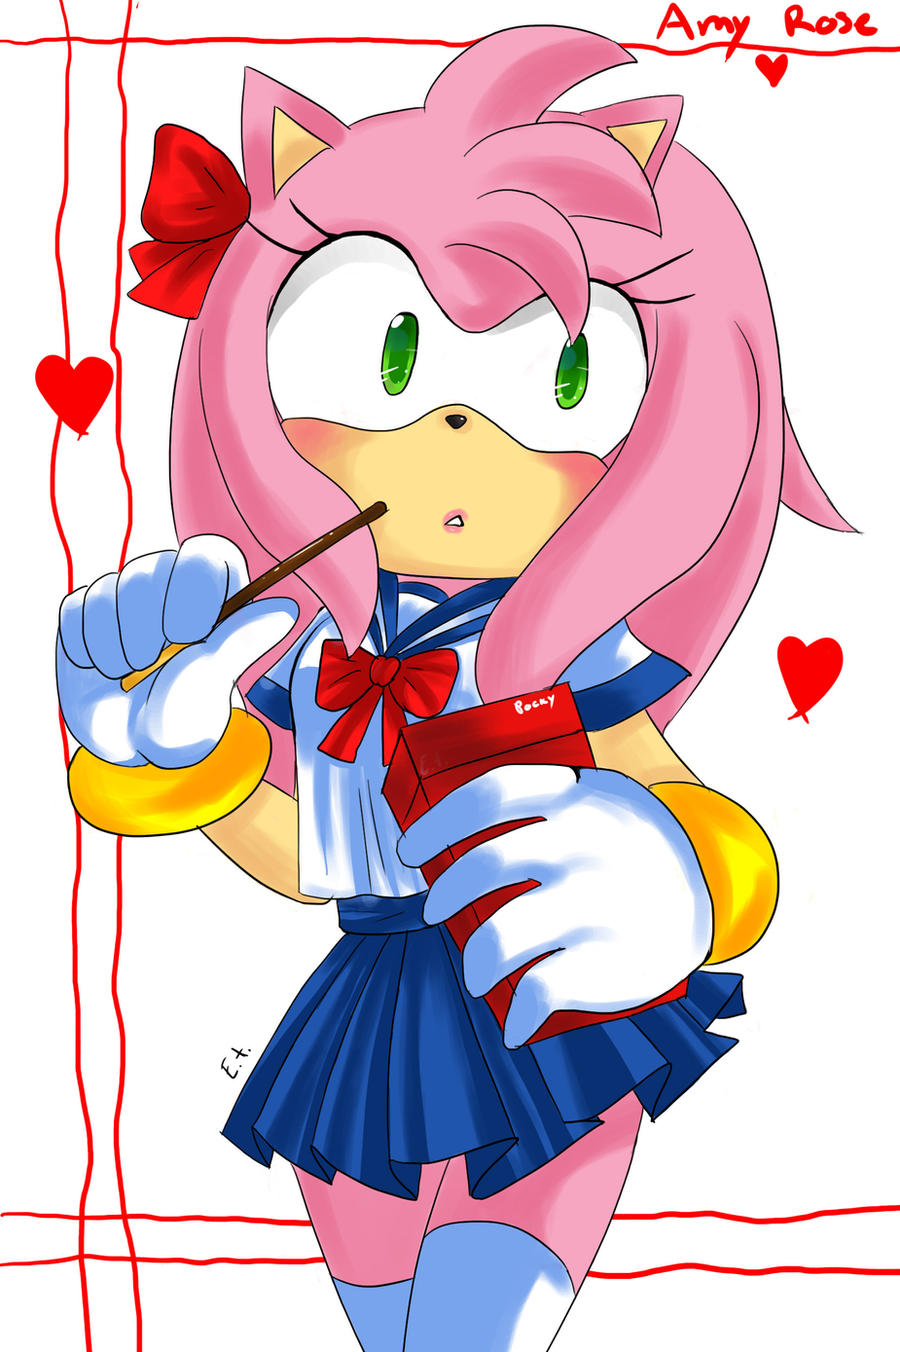 Amy rose in school uniform by evino chan on deviantart